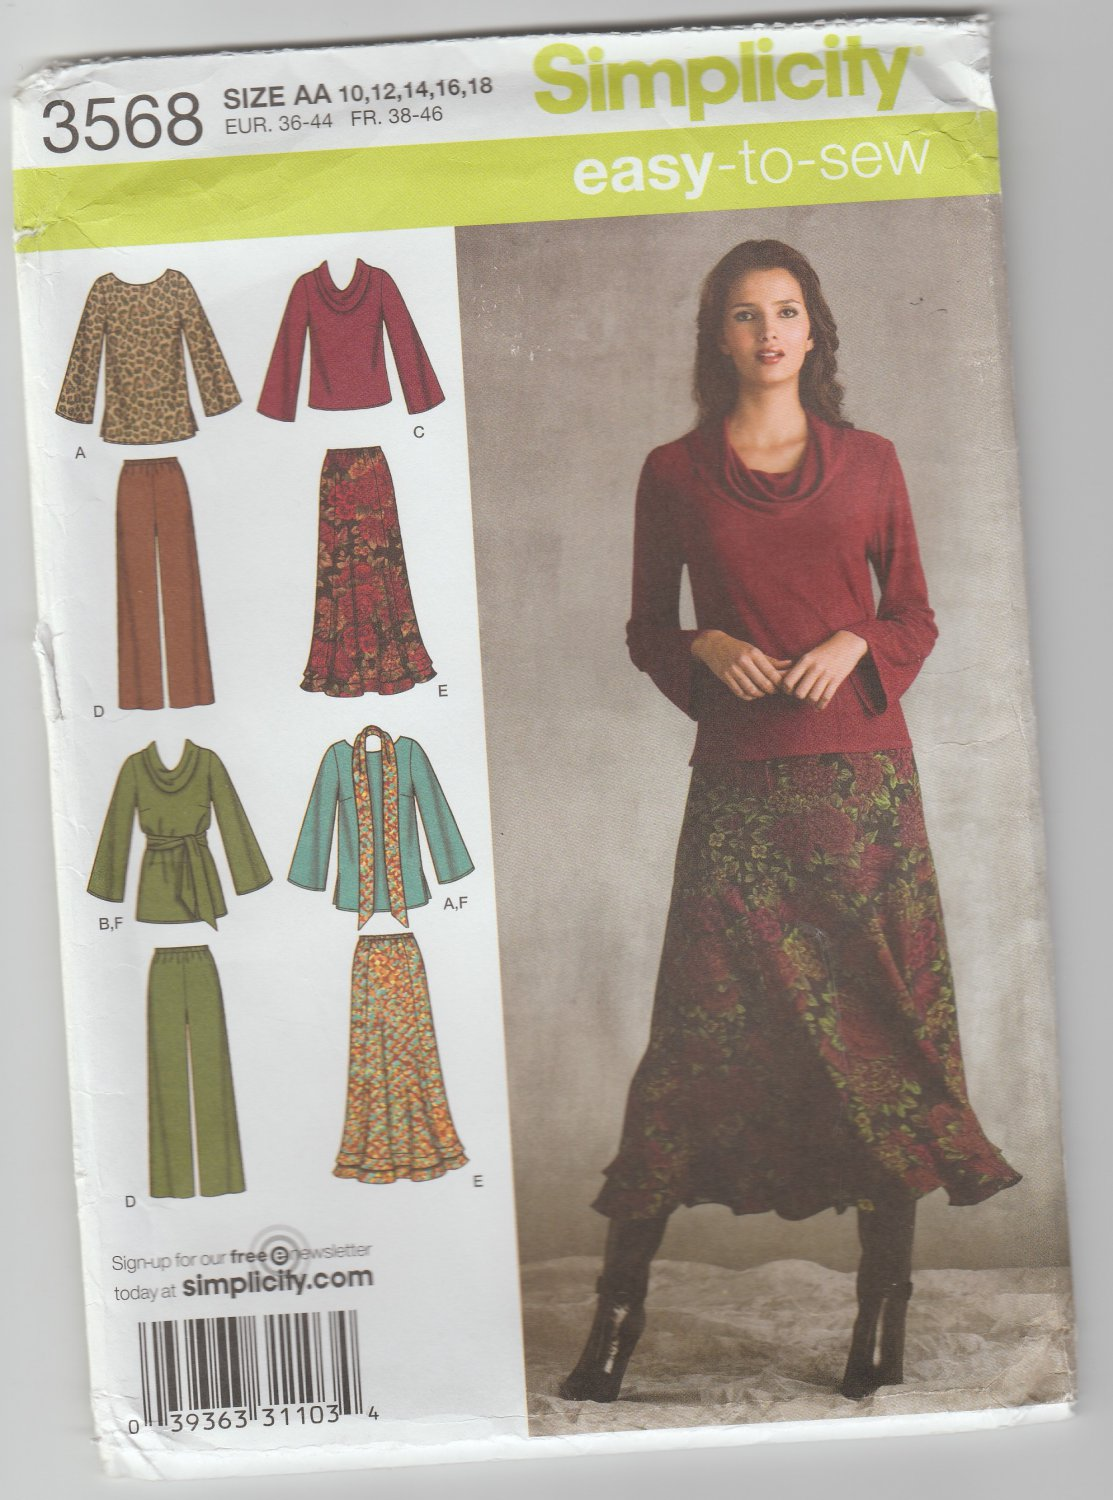 Simplicity 3568 Easy To Sew Patterns Skirt, Top, Sash Size AA 10-18